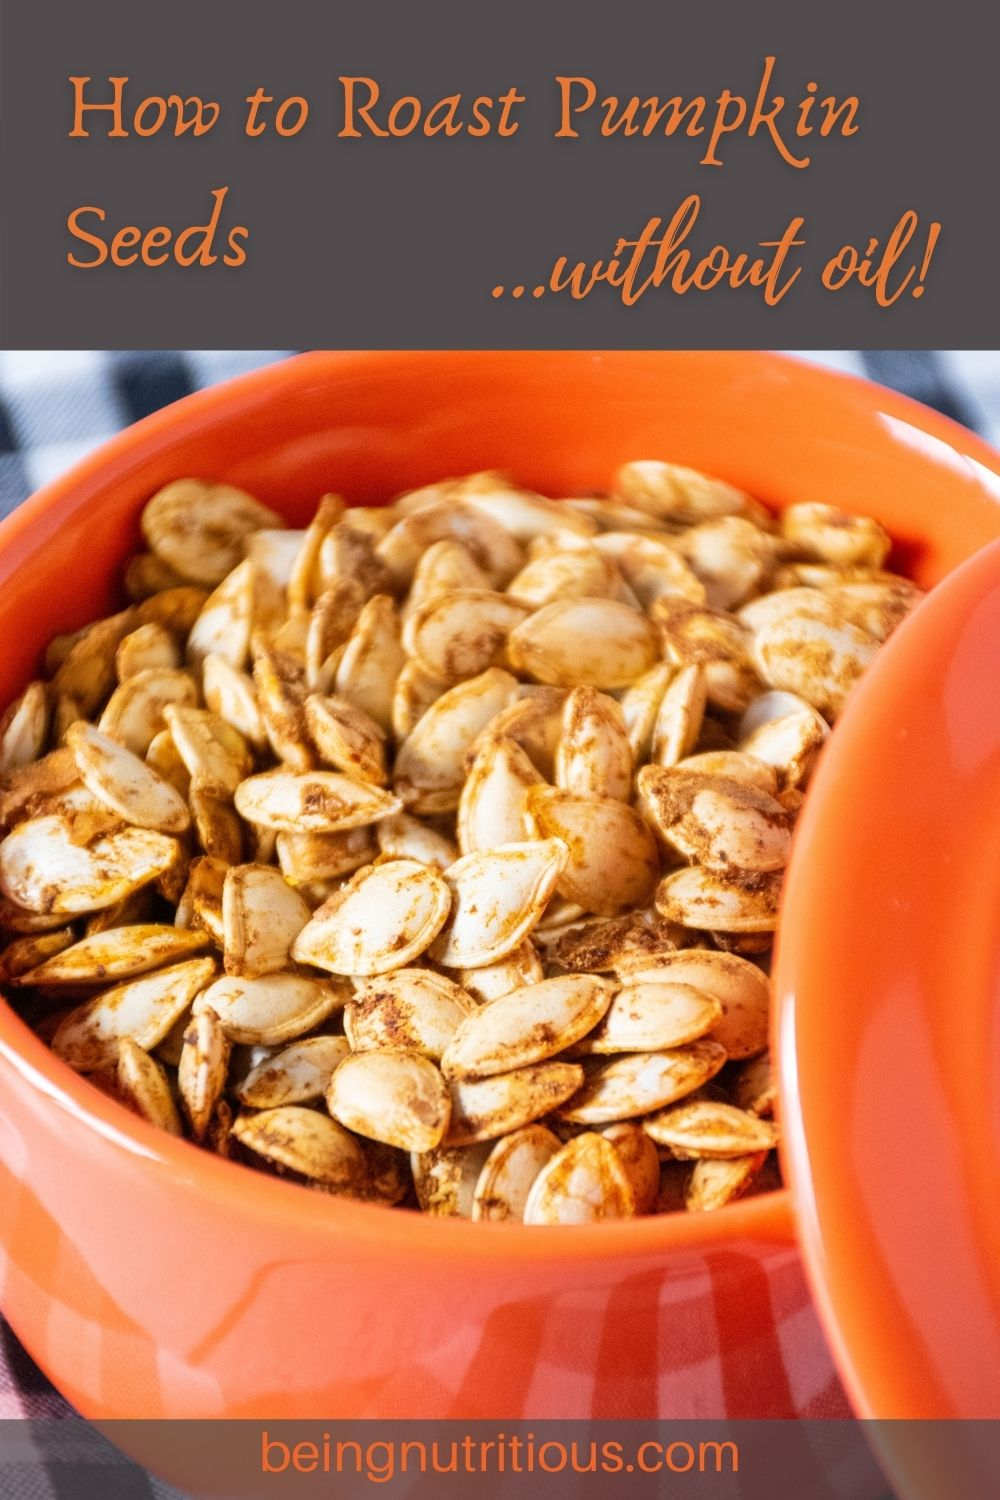 Small ceramic pot of roasted pumpkin seeds. Text overlay: How to roast pumpkin seeds without oil.